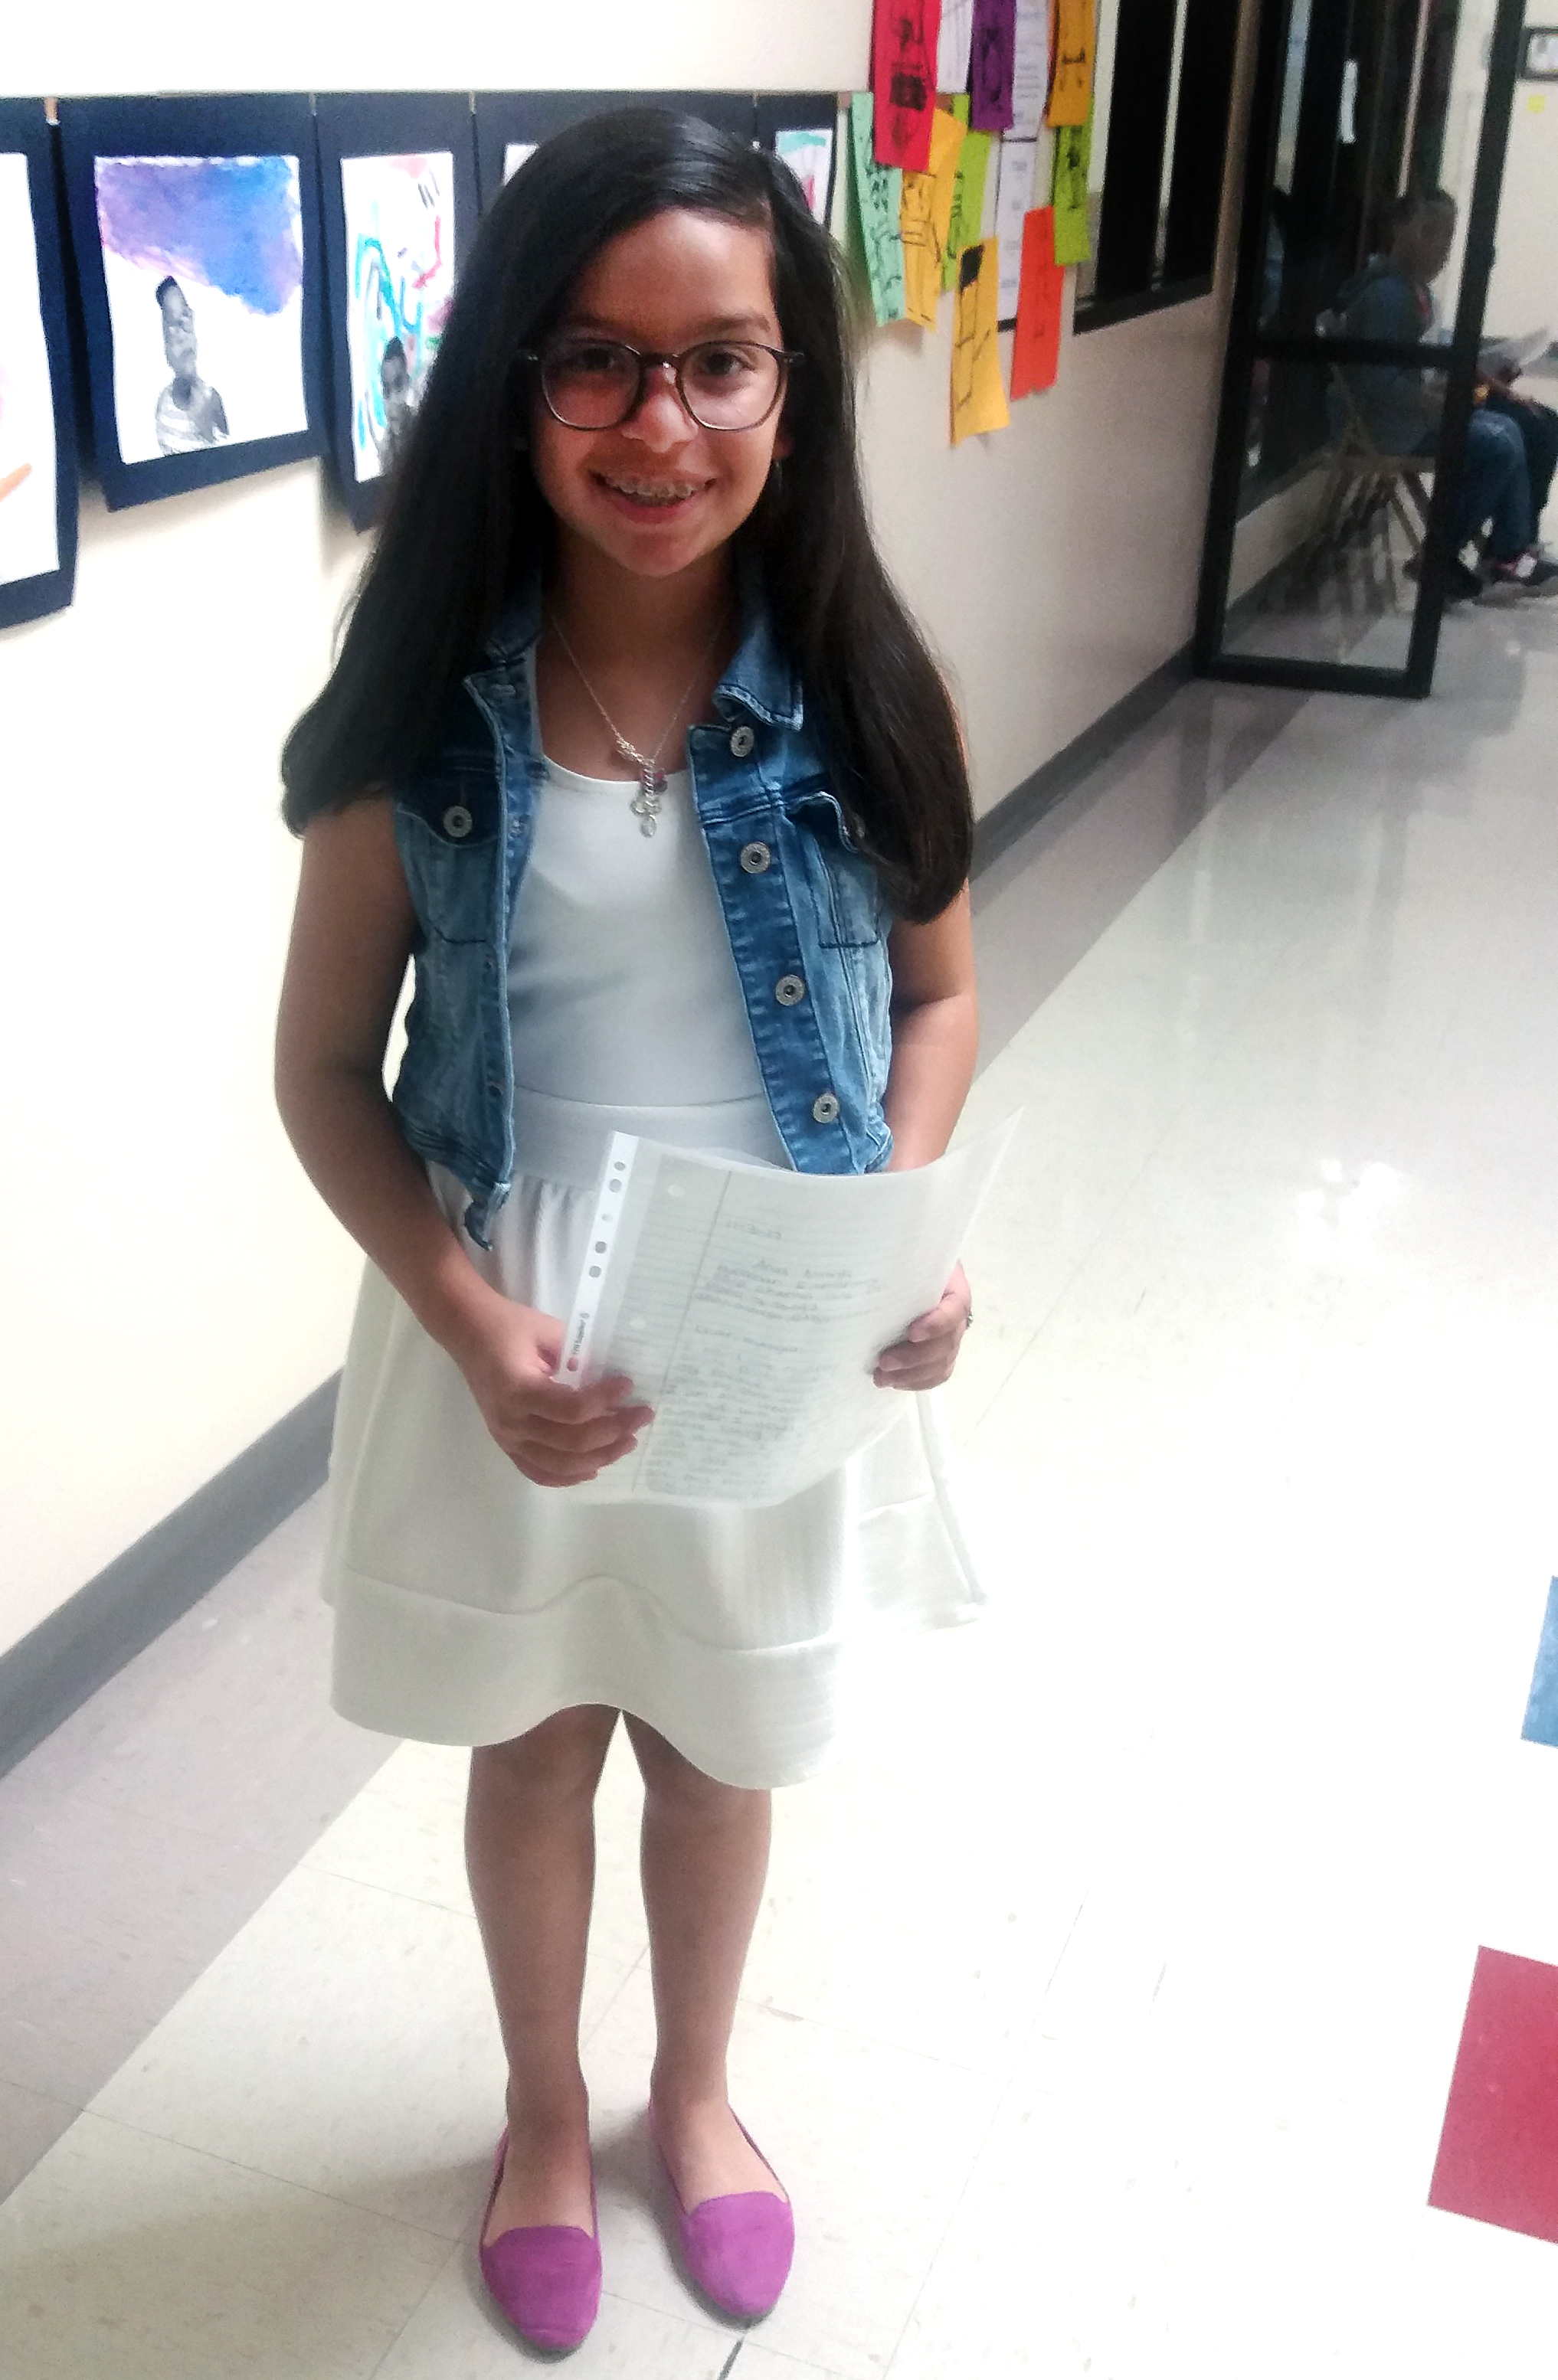 Huffman 5th grader at job fair